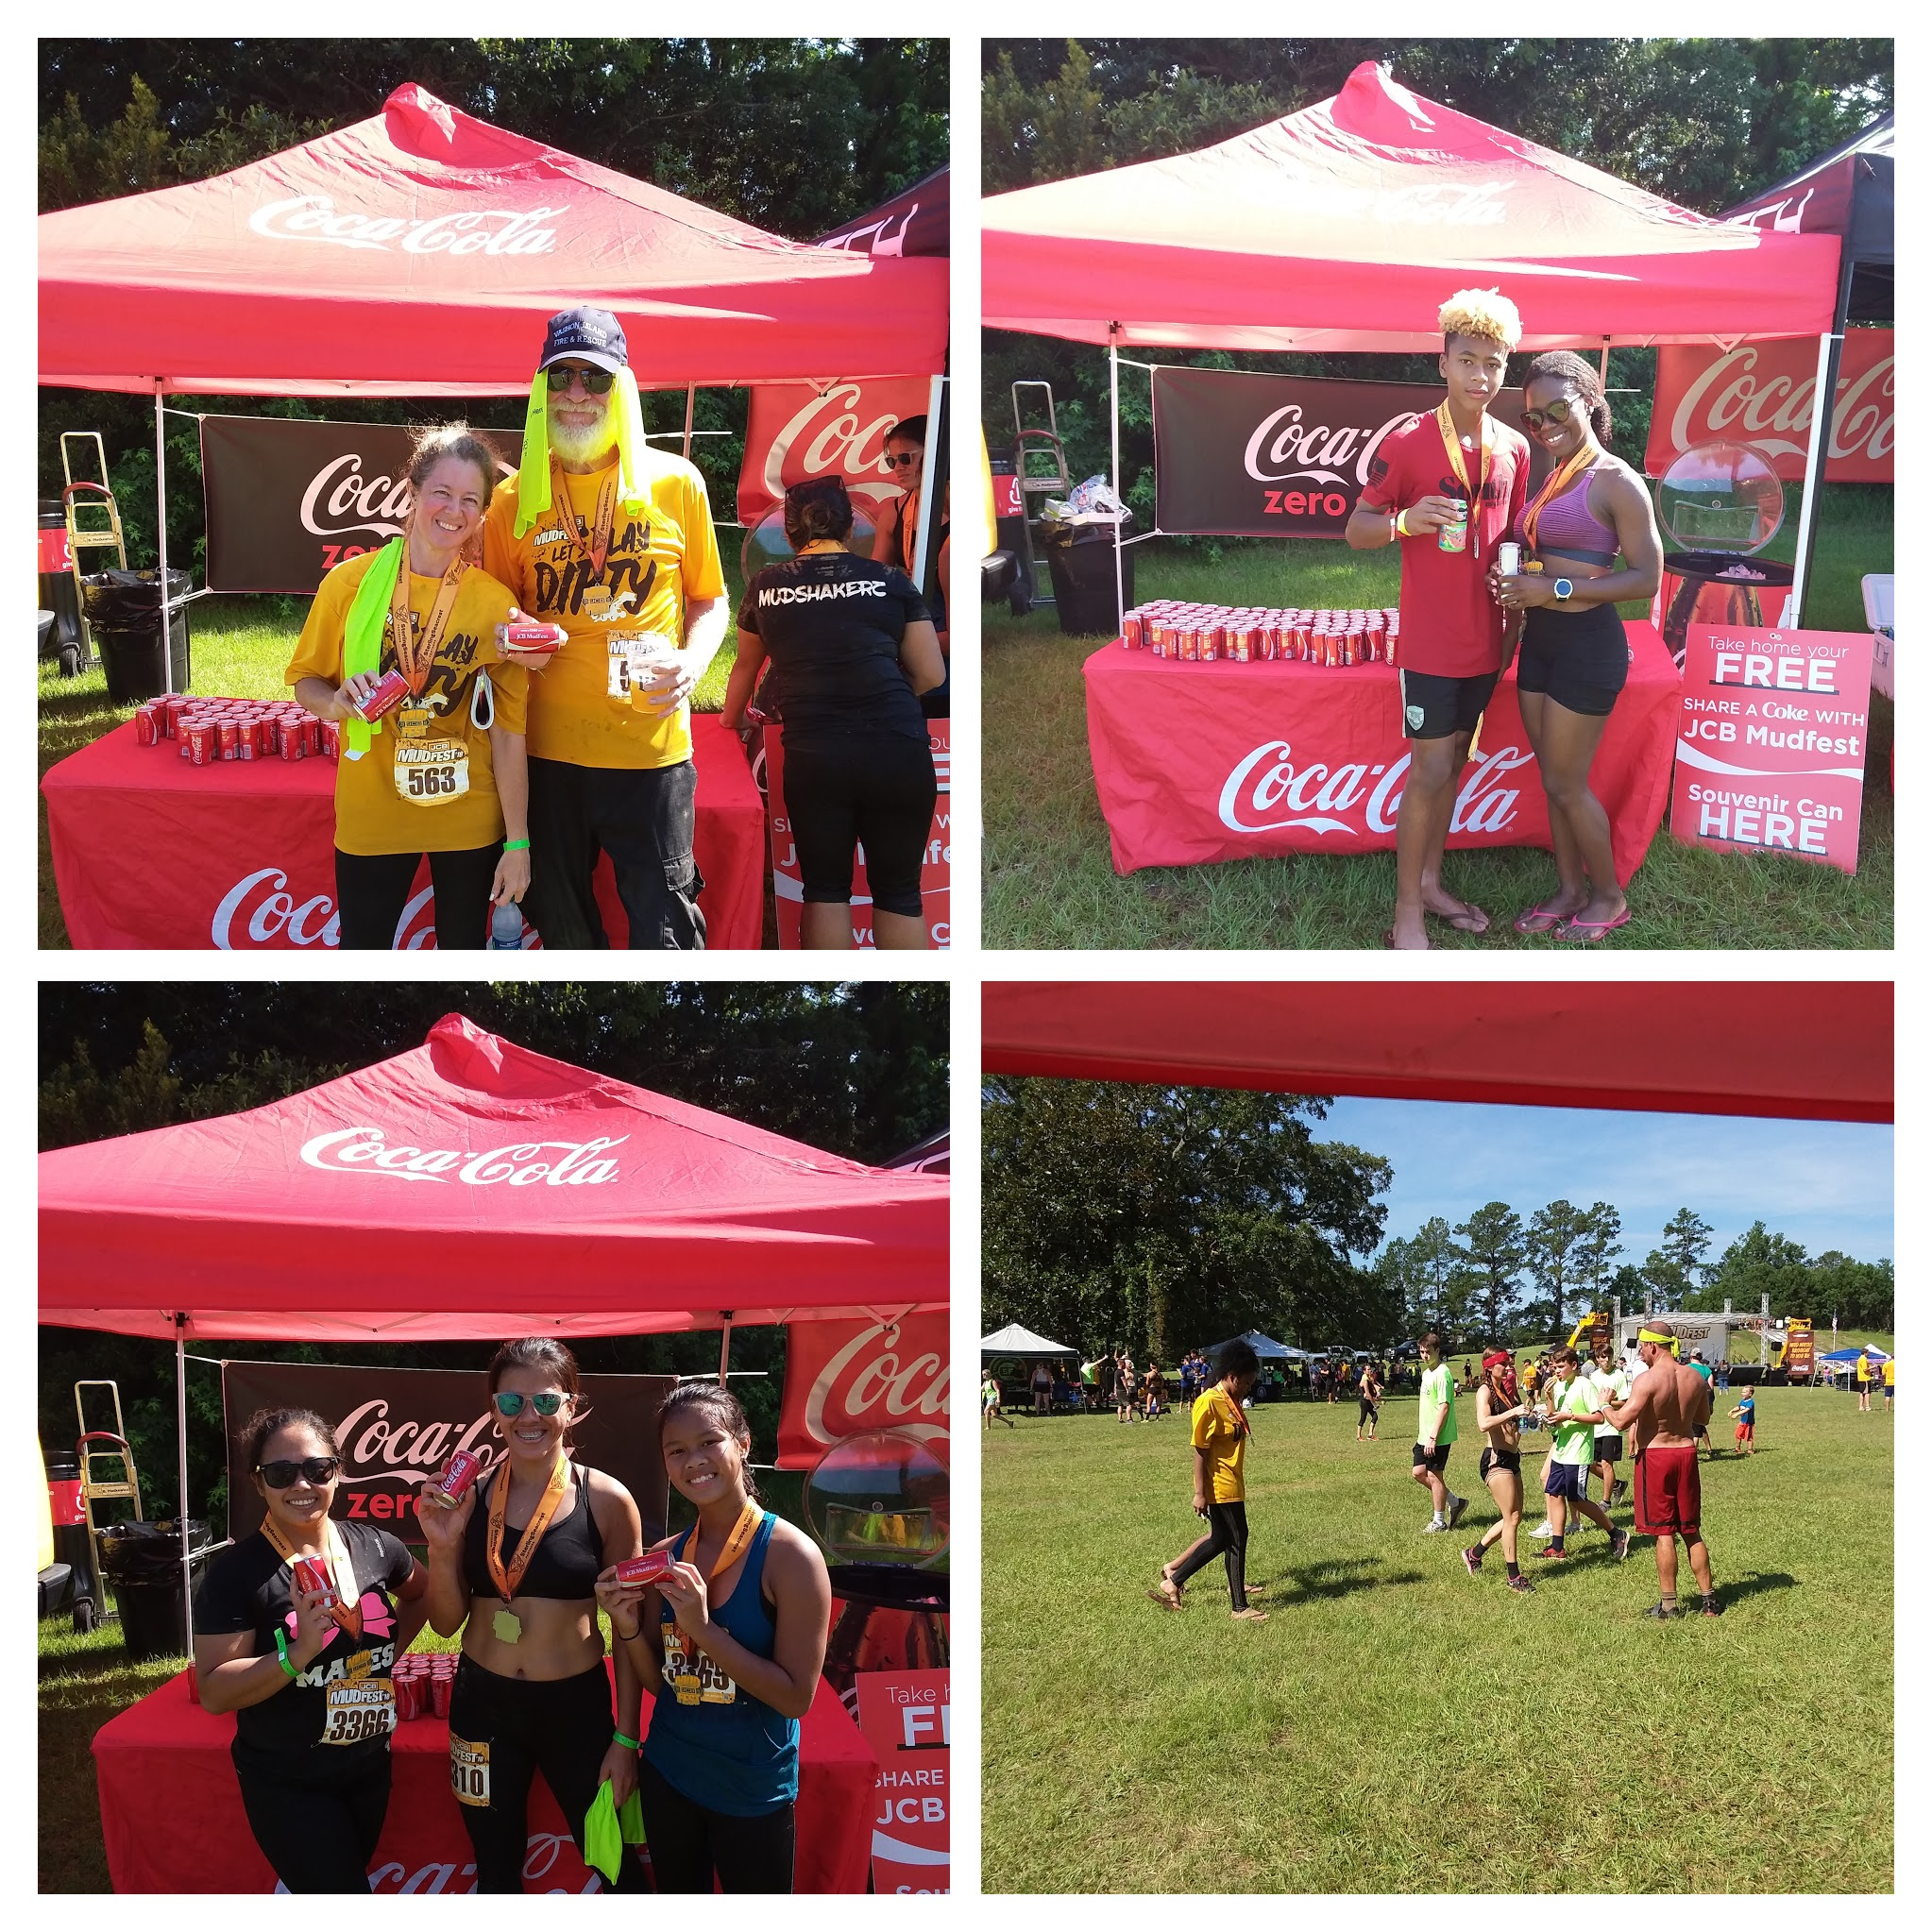 Runners enjoying Coca-Cola products post-race